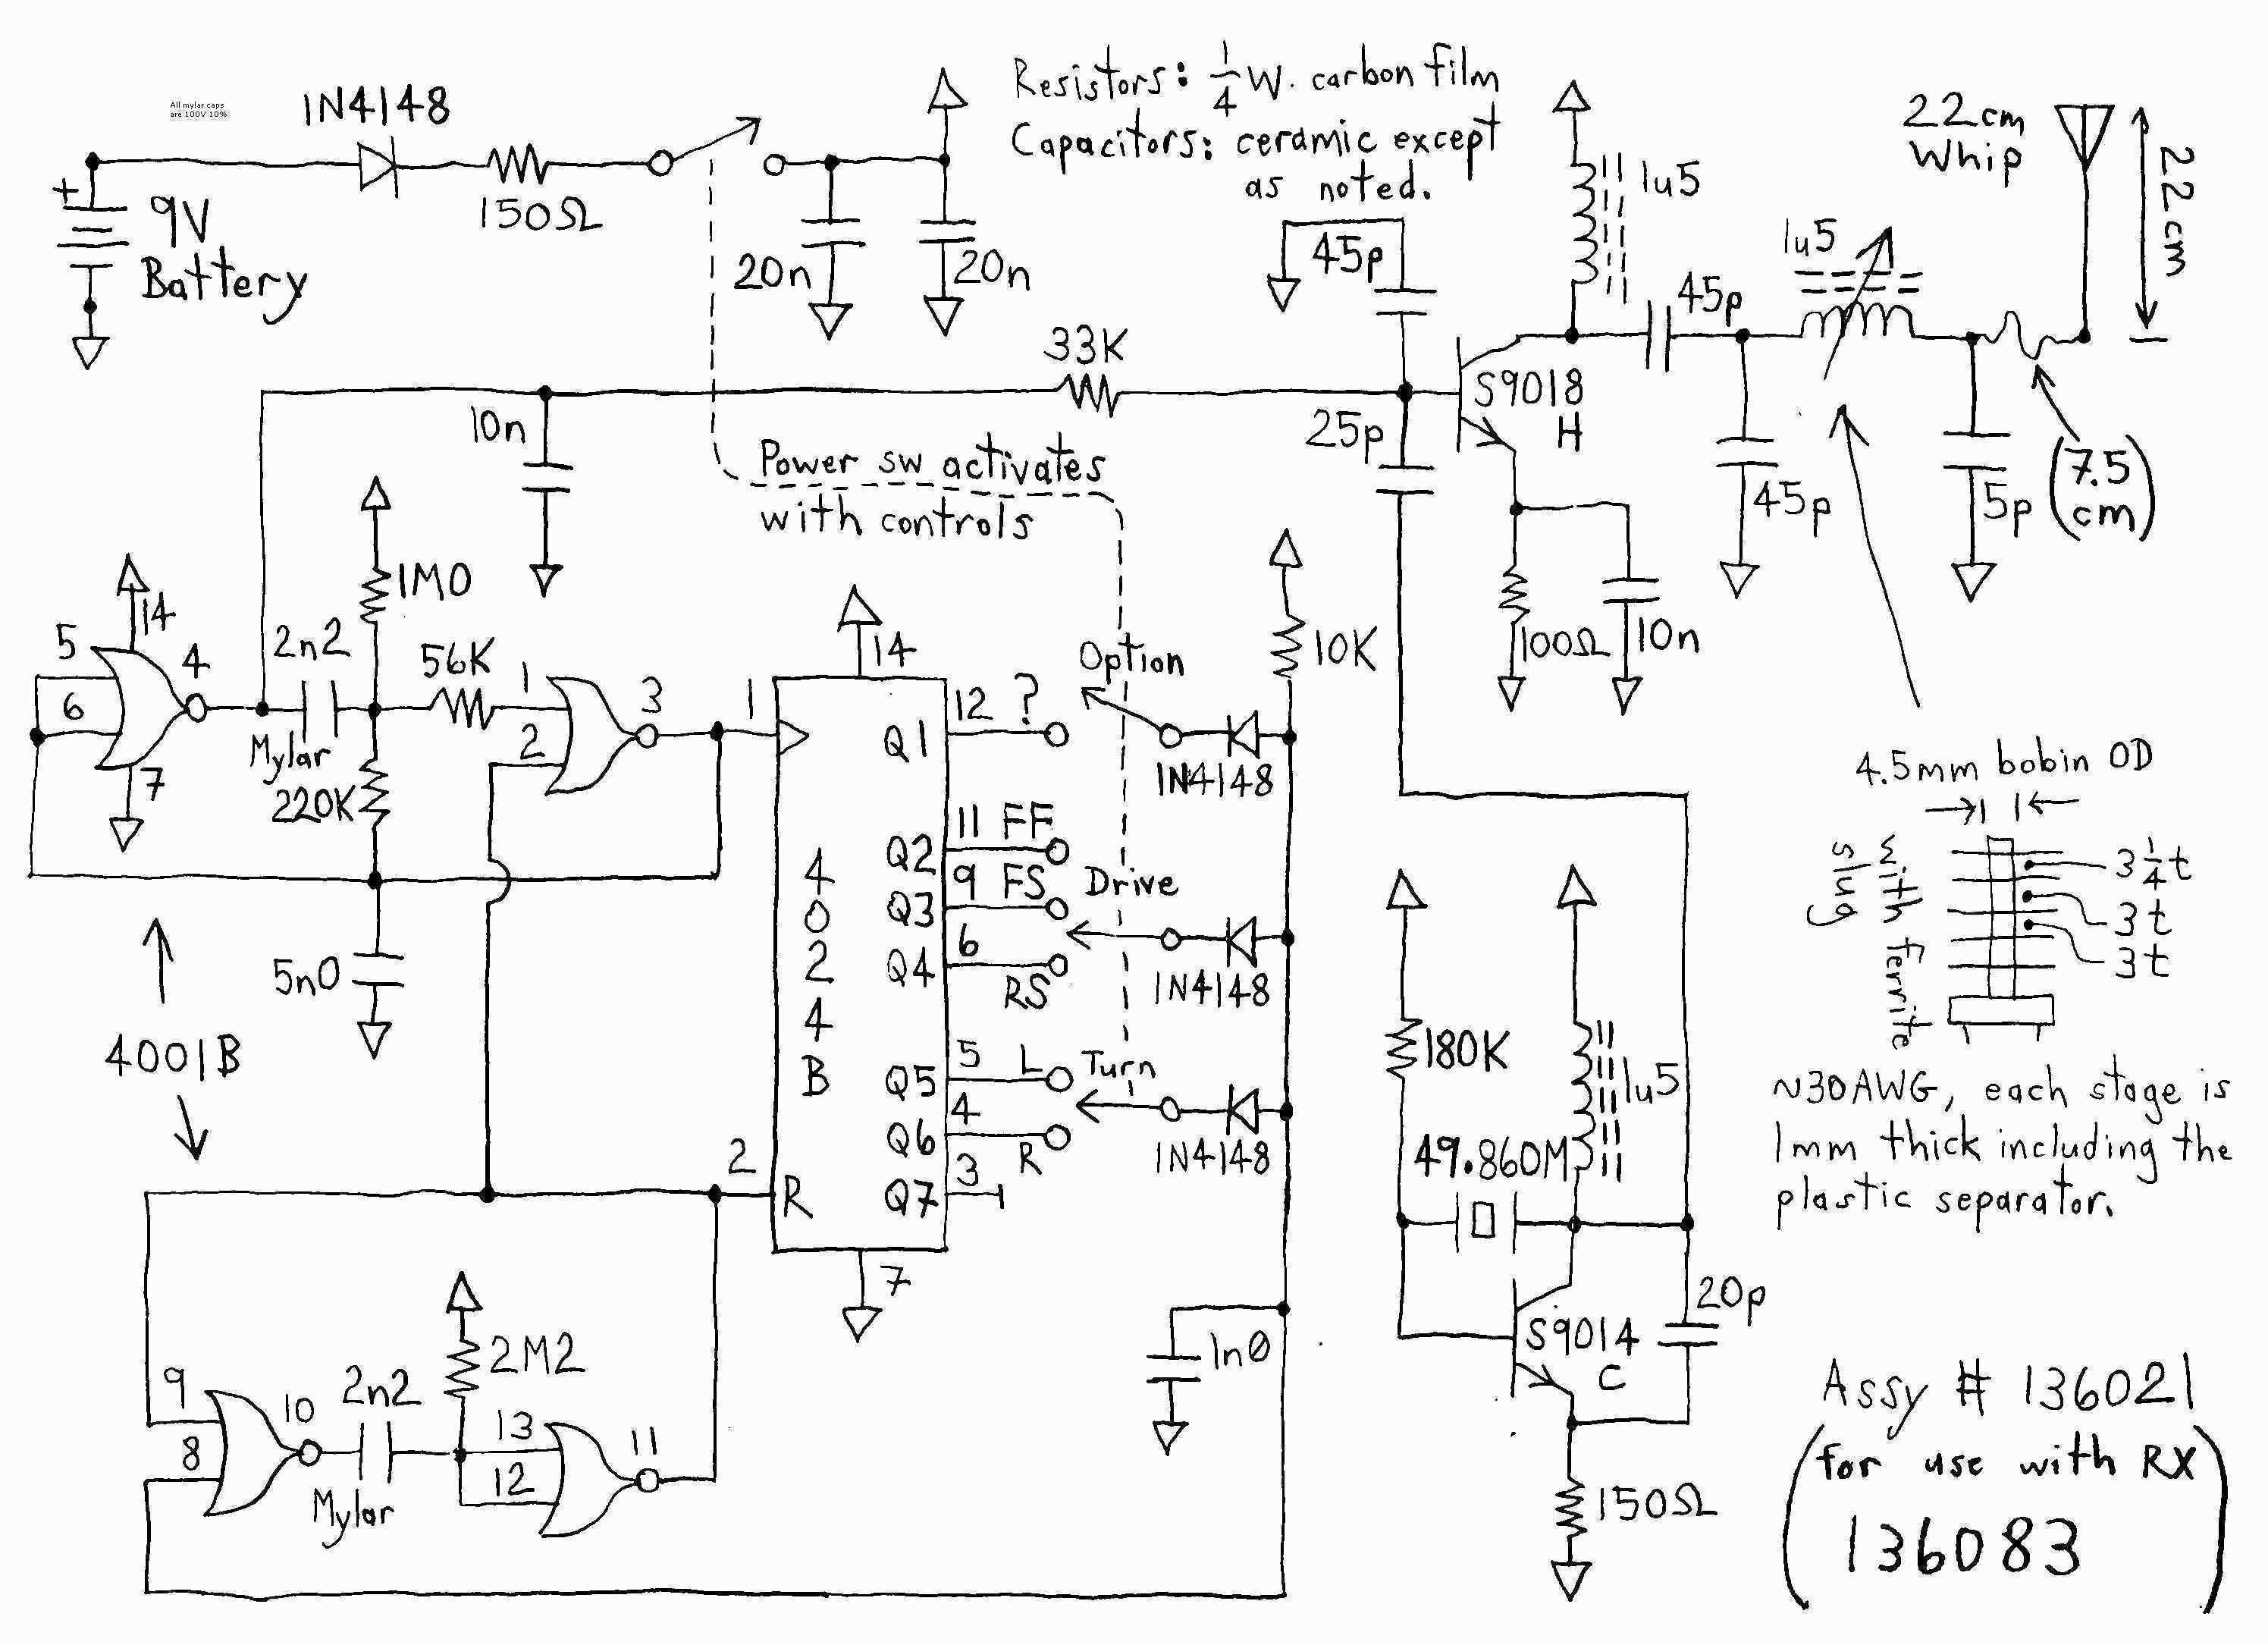 Engineering Flow Diagram Symbols Chemical Engineering Diagram Symbols Electricity Site Of Engineering Flow Diagram Symbols Pin by Diagram Bacamajalah On Wiring Samples